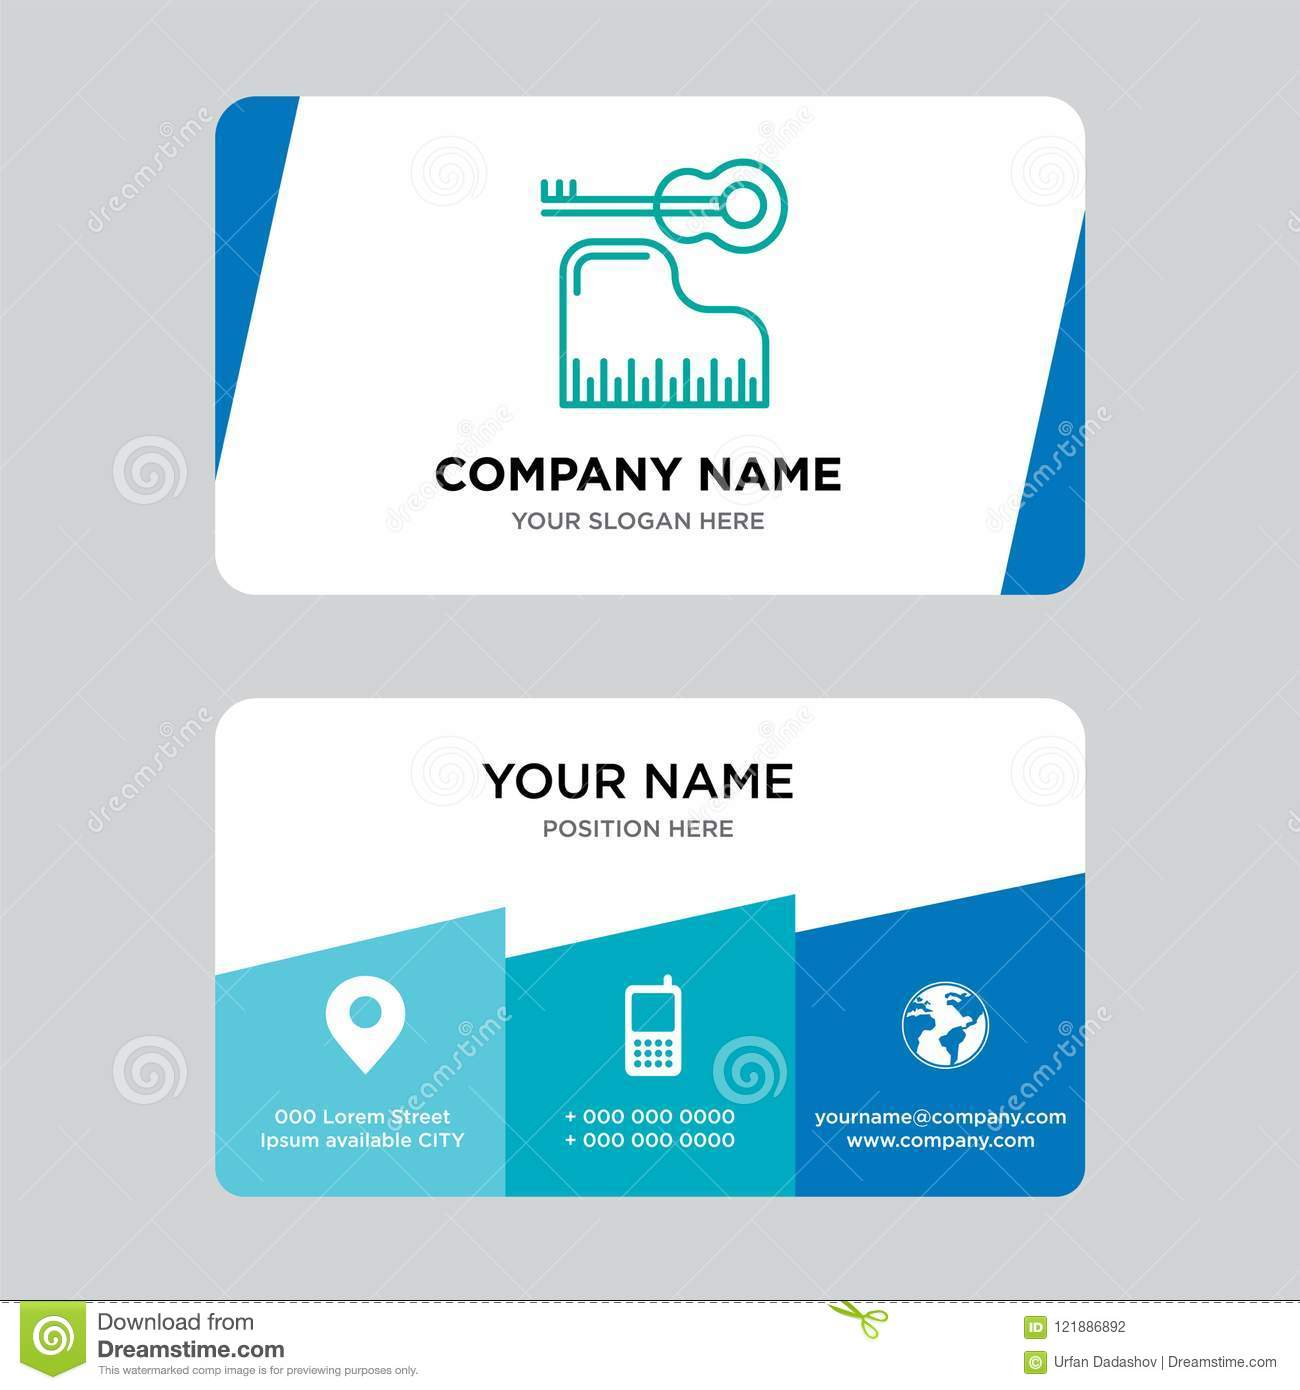 Piano Business Card Design Template Visiting For Your Company